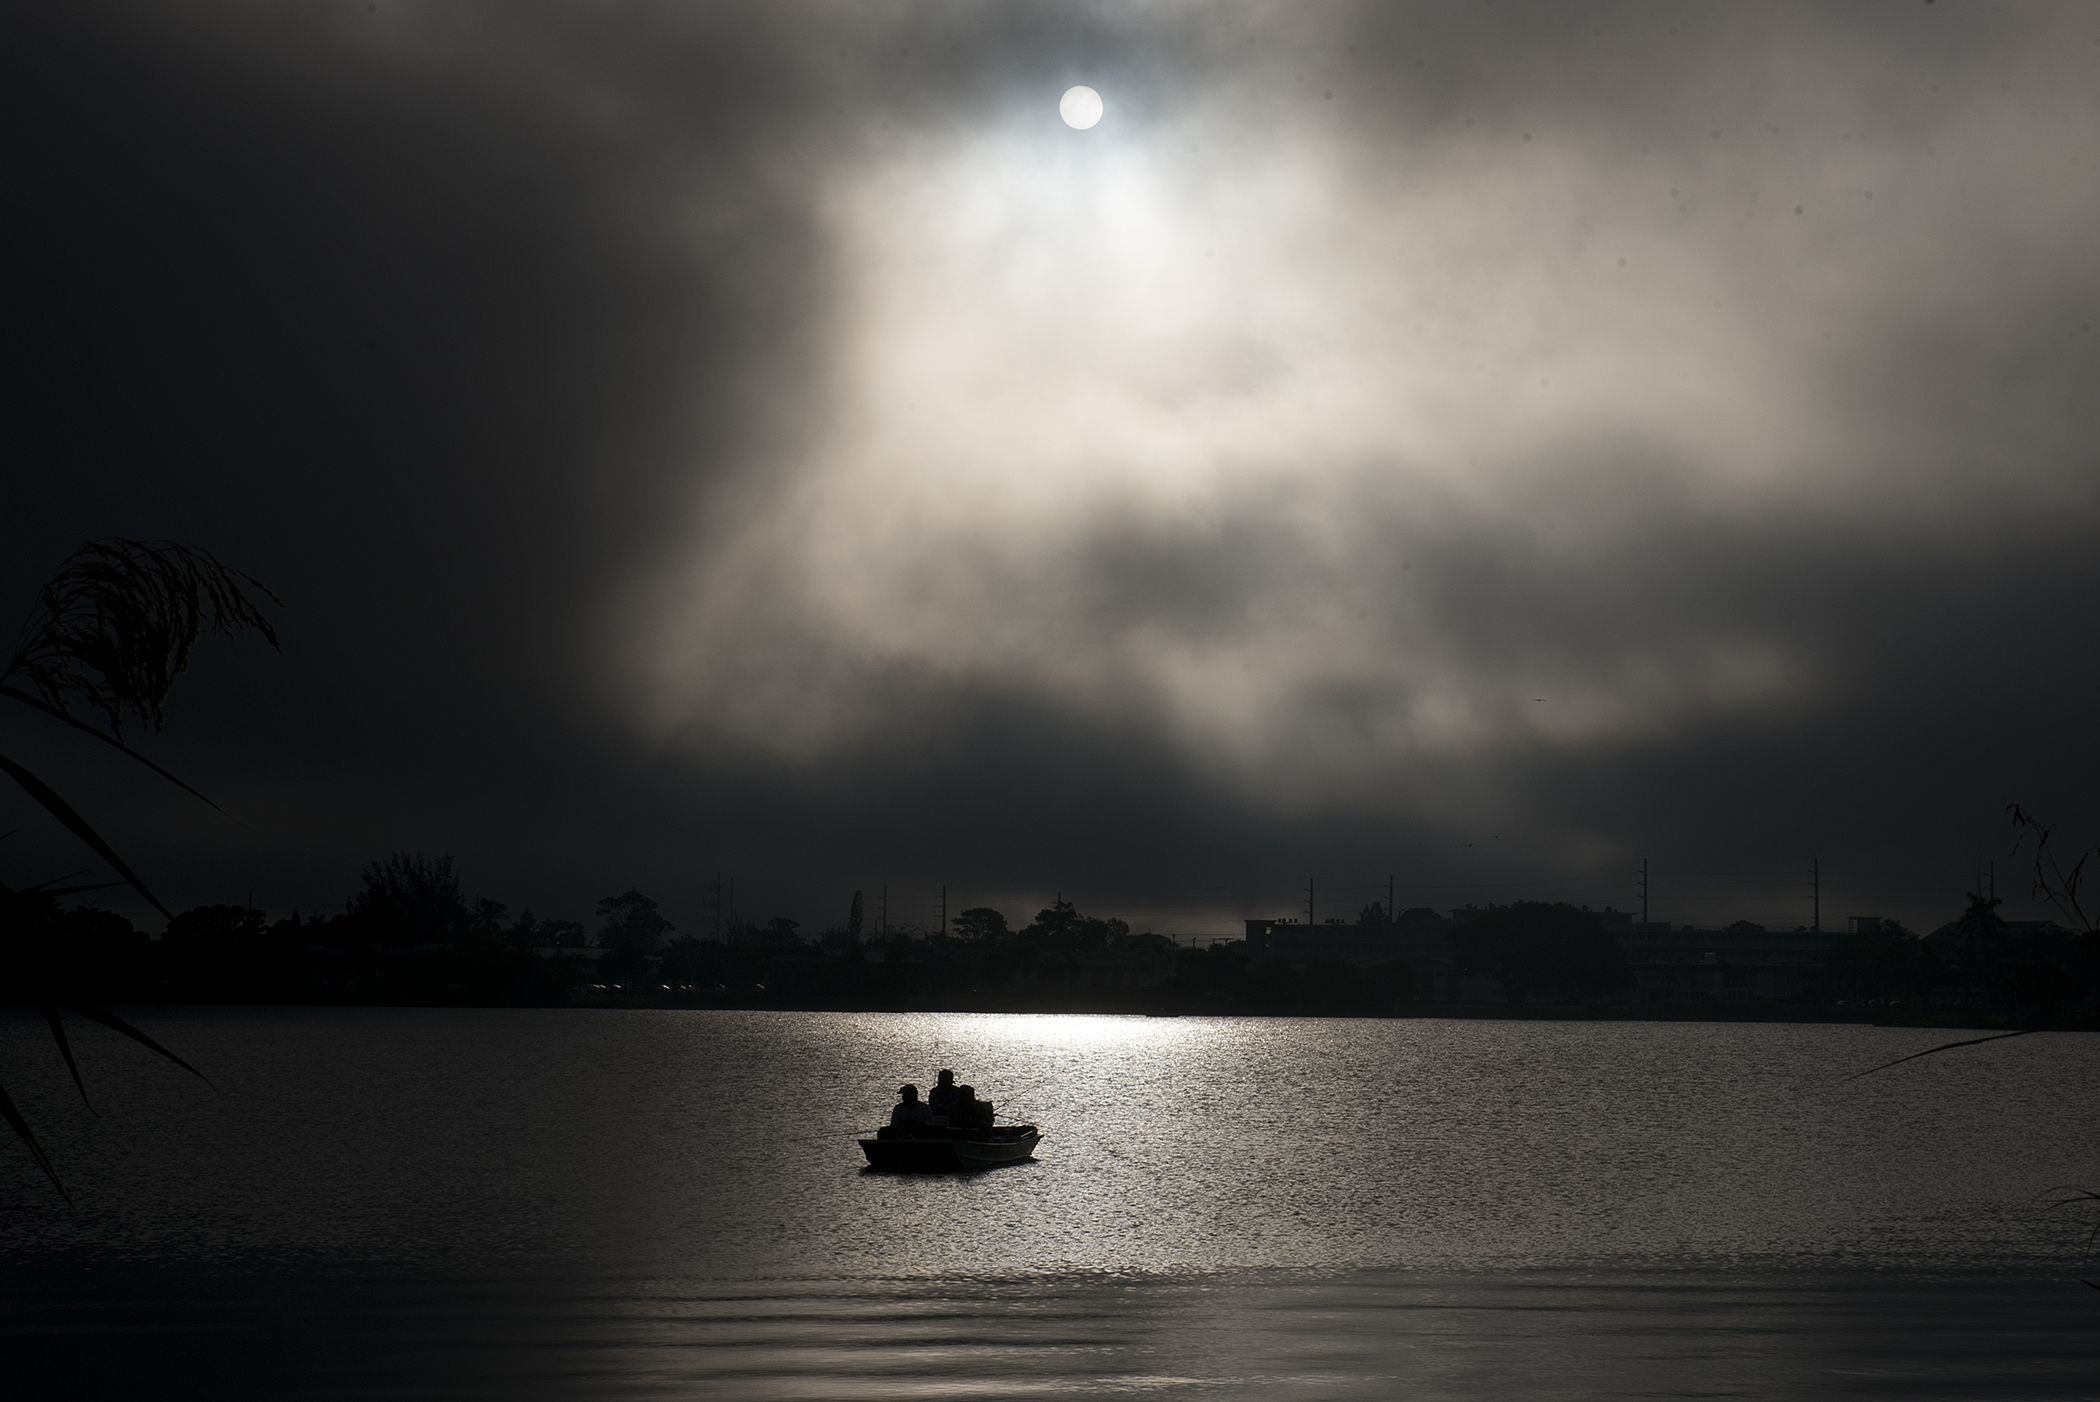 A trio of fisherman are seen in their boat on the Lake Osborne water at sunrise in James Prince Park in Lake Worth, Fla.